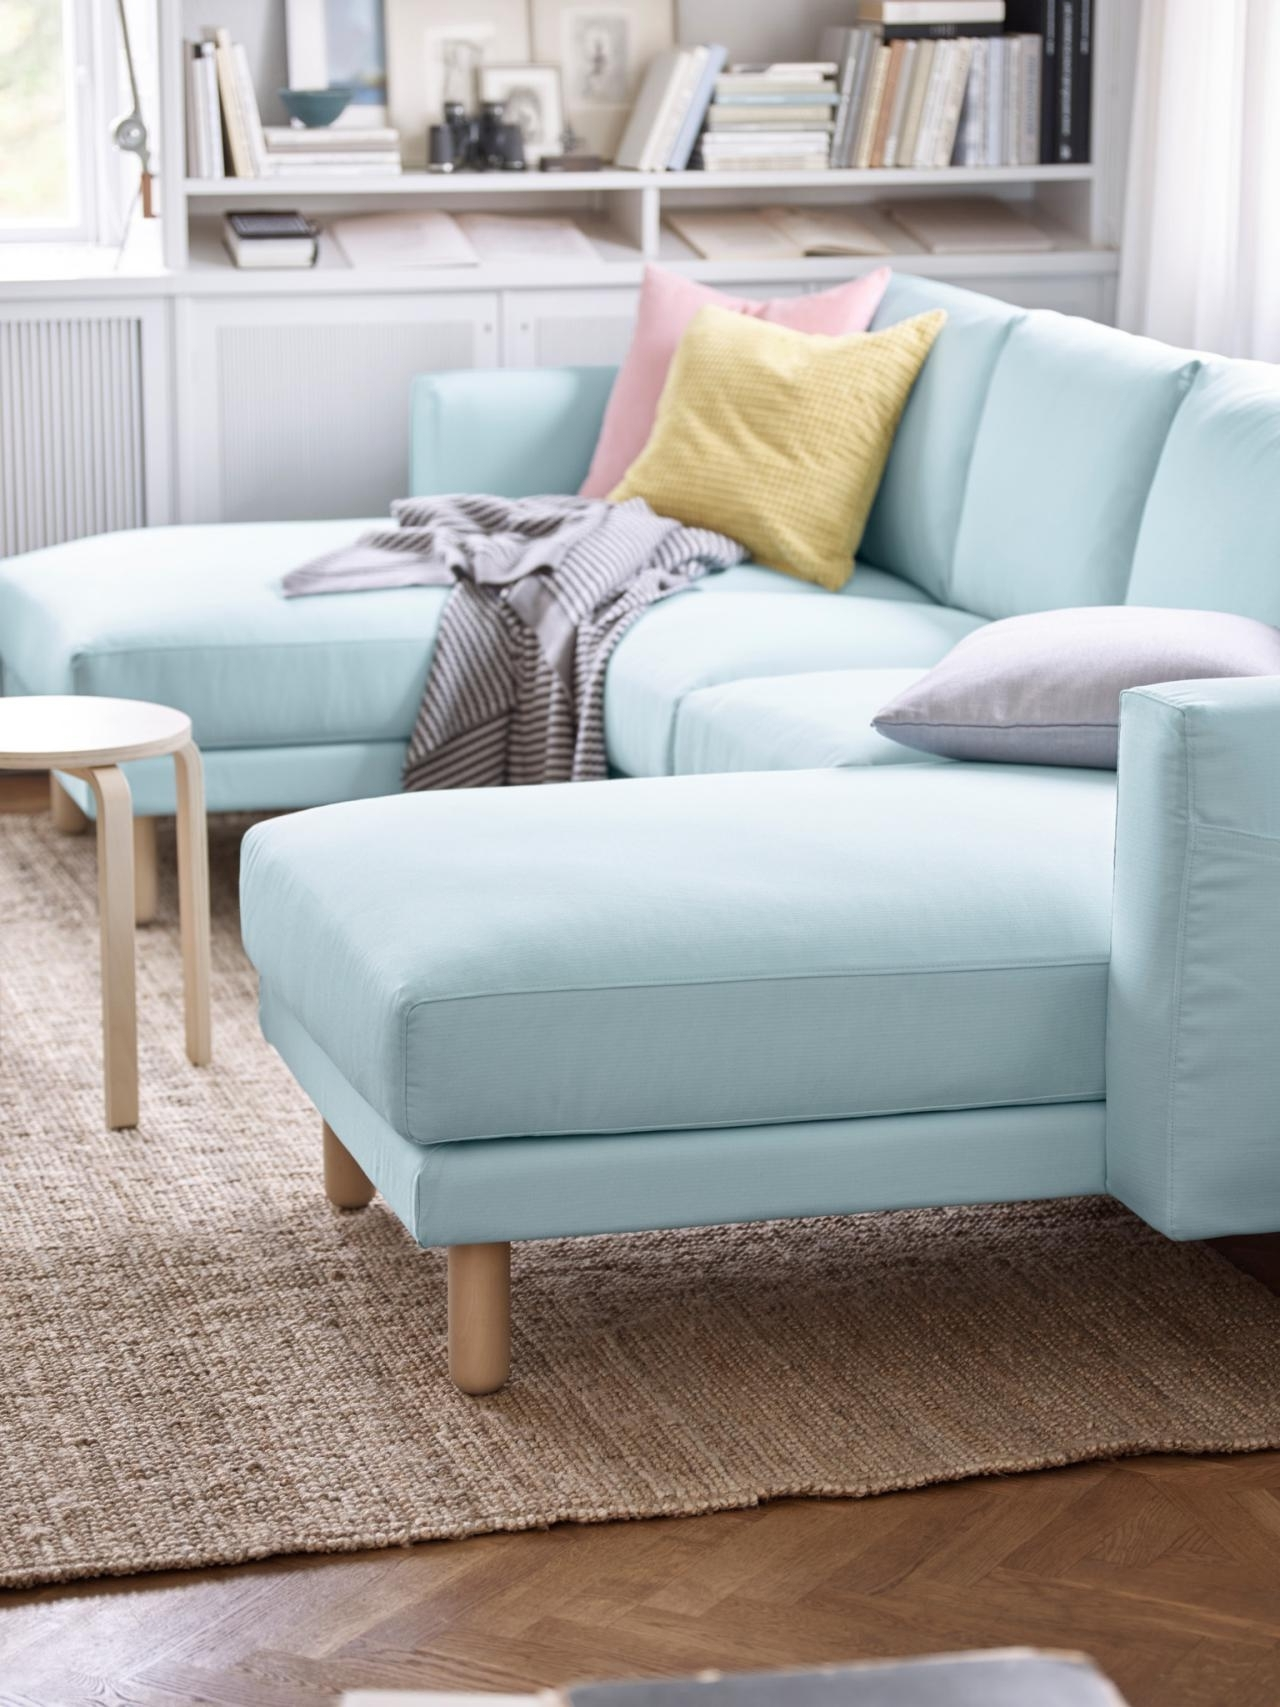 5 Apartment Sized Sofas That Are Lifesavers (View 6 of 20)